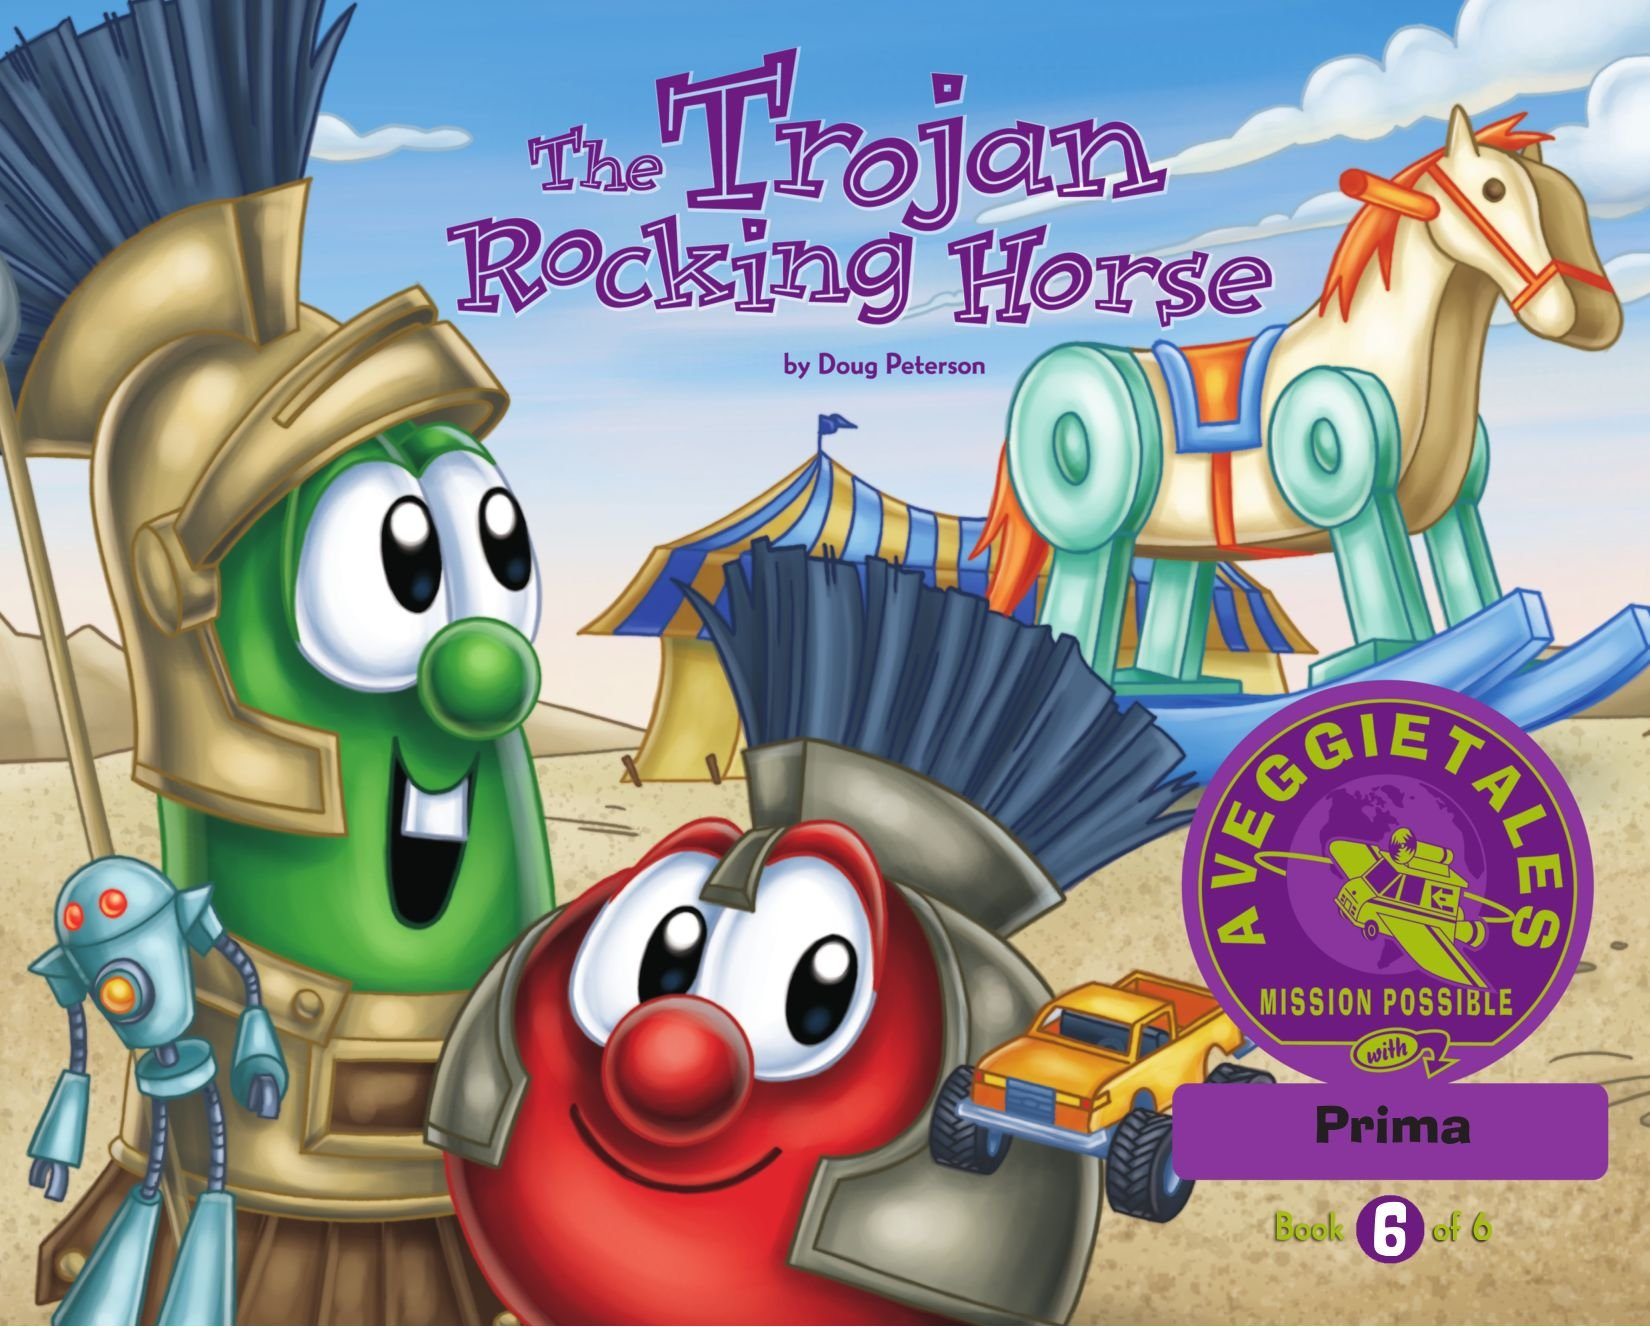 Download The Trojan Rocking Horse - VeggieTales Mission Possible Adventure Series #6: Personalized for Prima (Girl) ebook